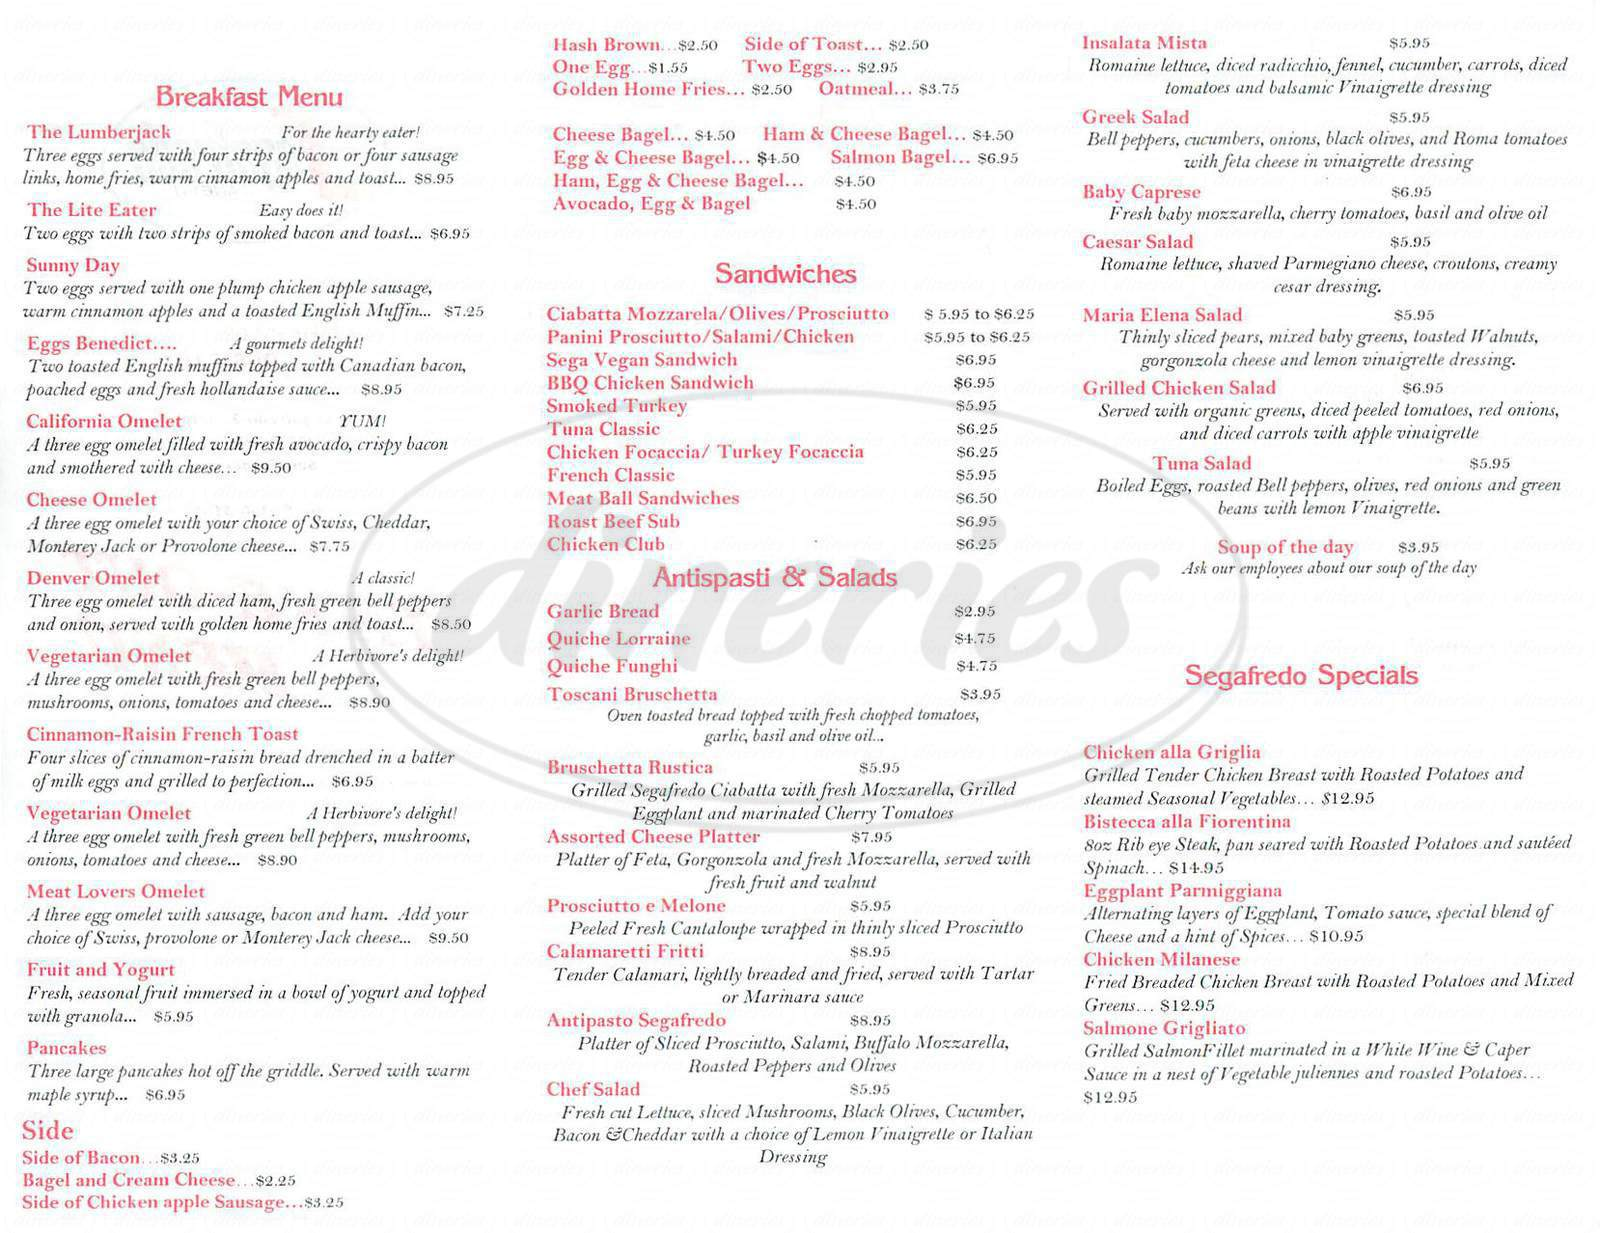 menu for Segafredo Zanetti